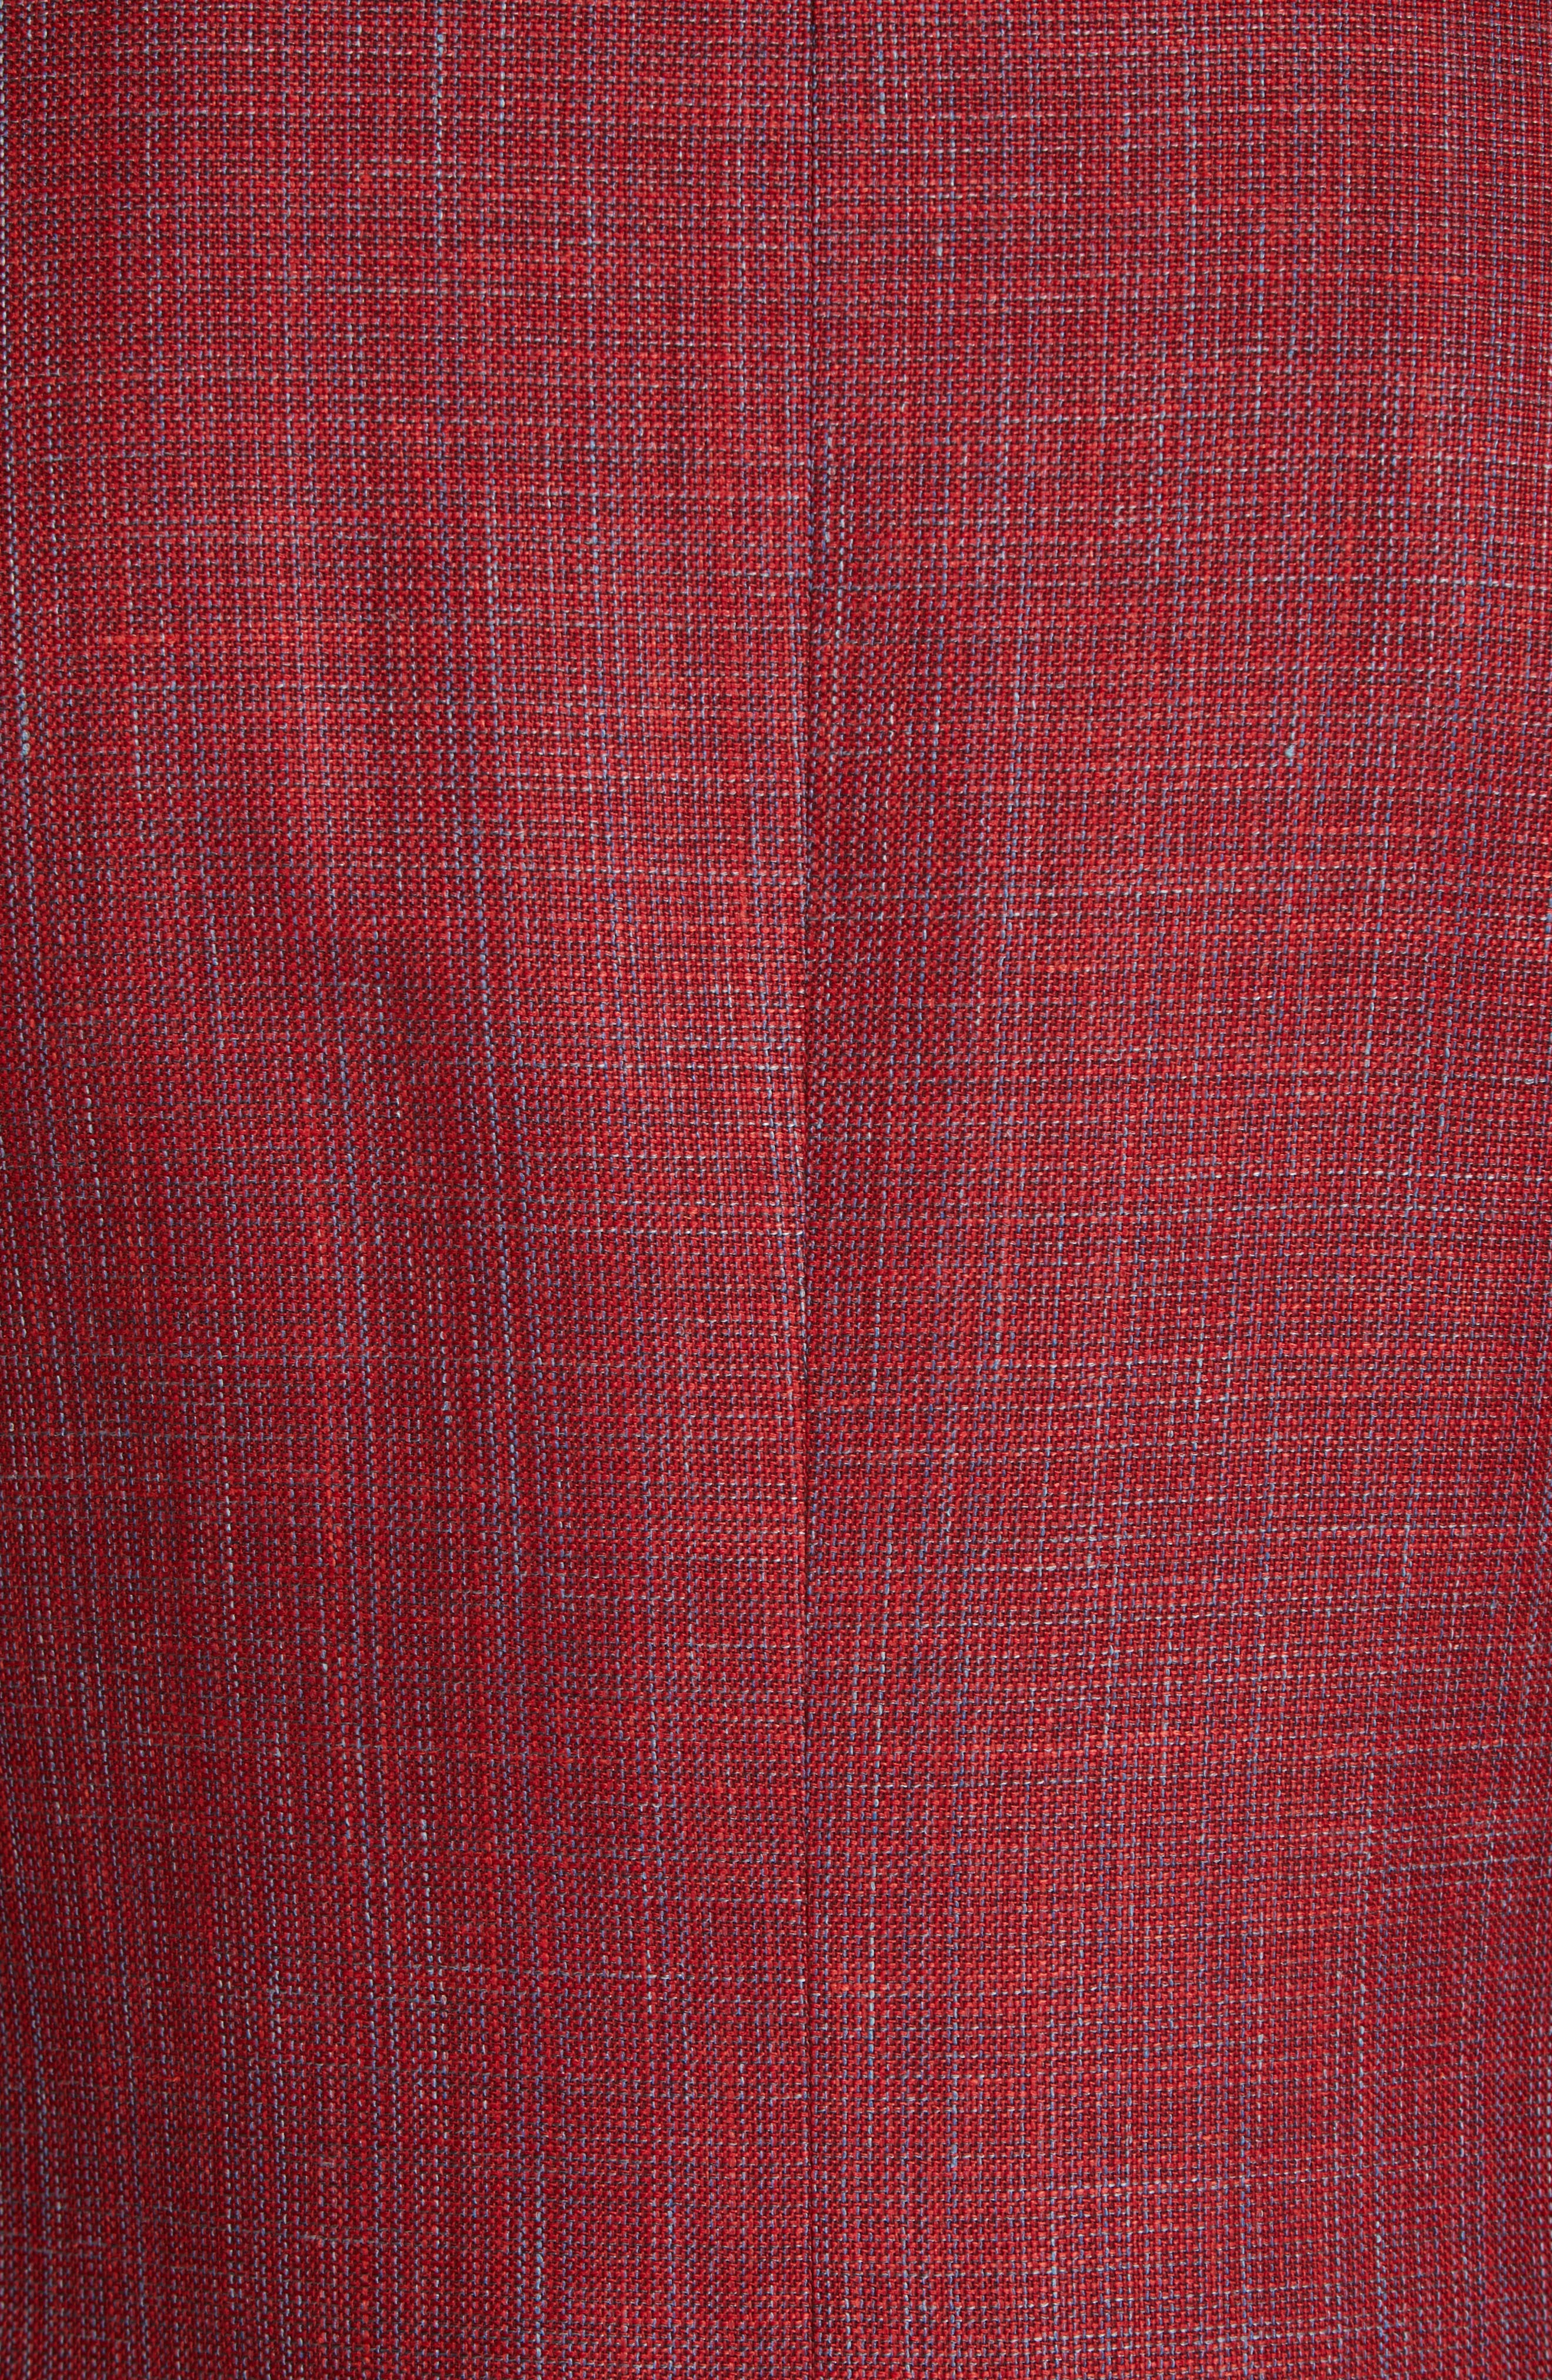 CANALI, Siena Classic Fit Wool, Silk & Linen Blend Sport Coat, Alternate thumbnail 6, color, RED